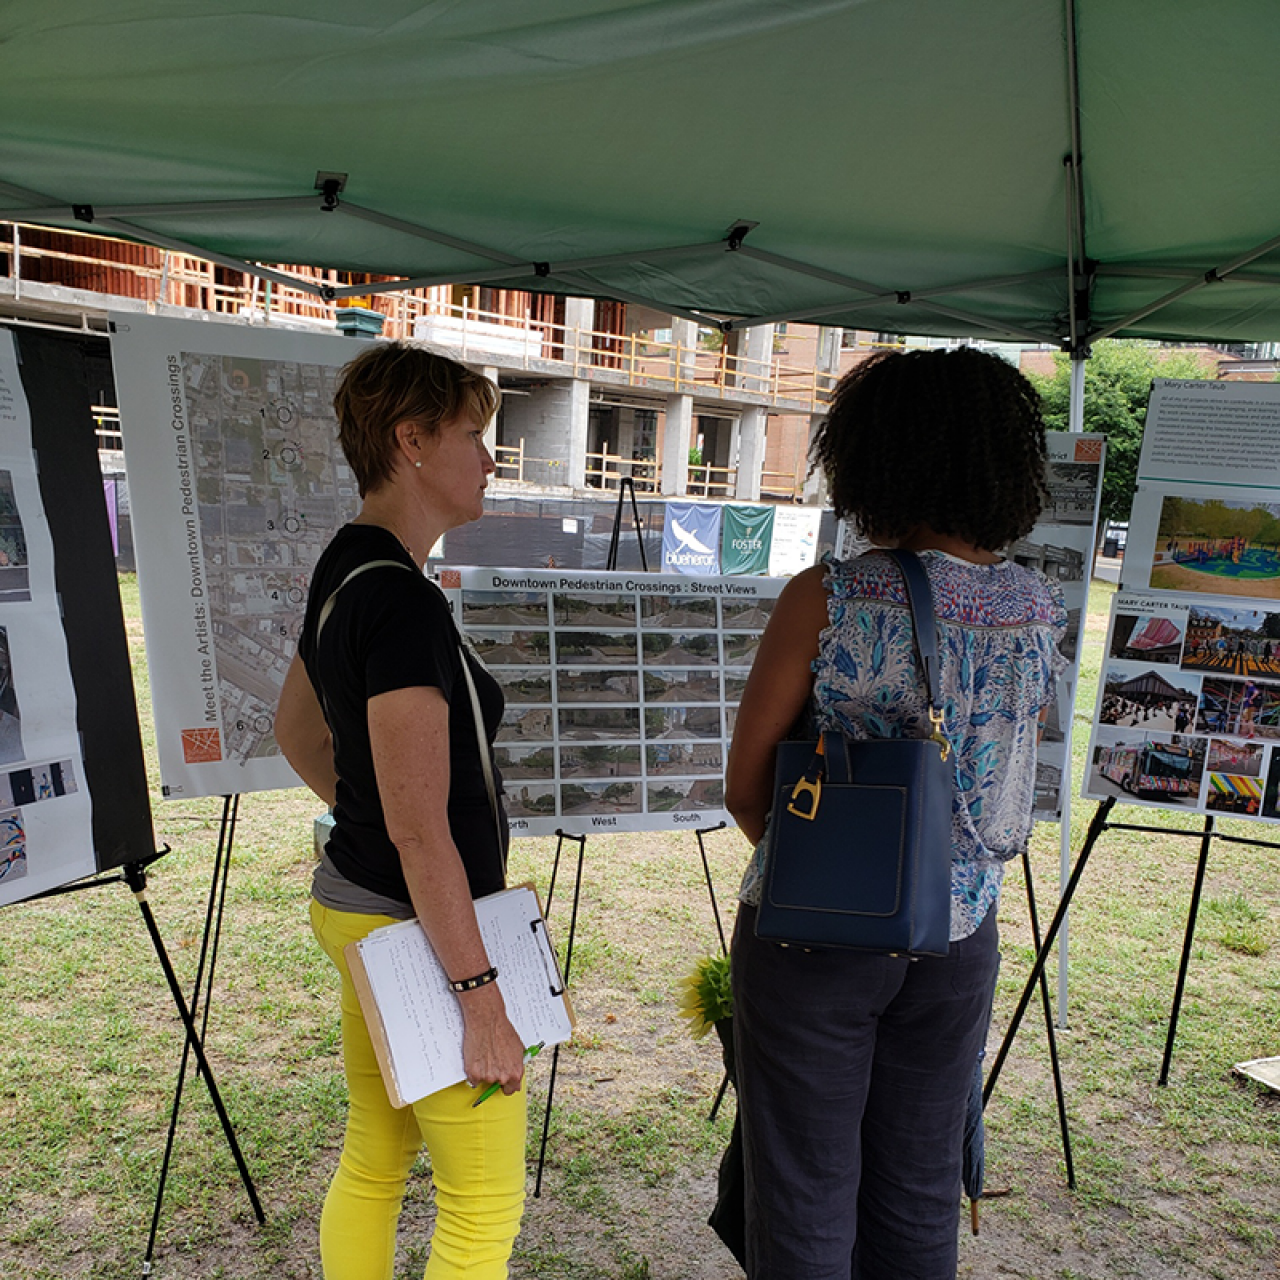 Mary Carter Taub speaking to a community member